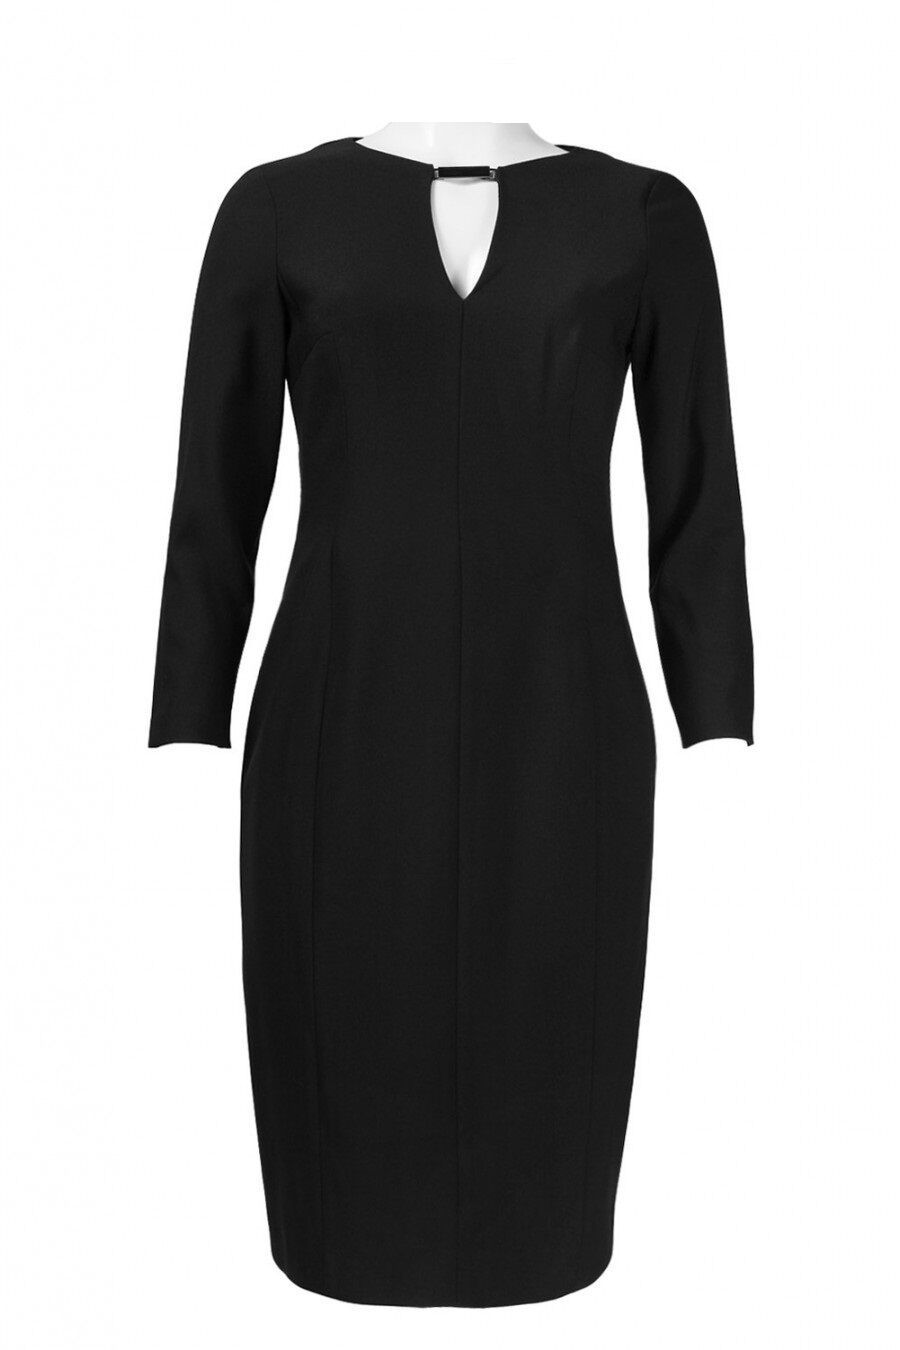 Primary image for New Anne Klein 3/4 Sleeve Keyhole Crepe Sheath Dress Black Size 2